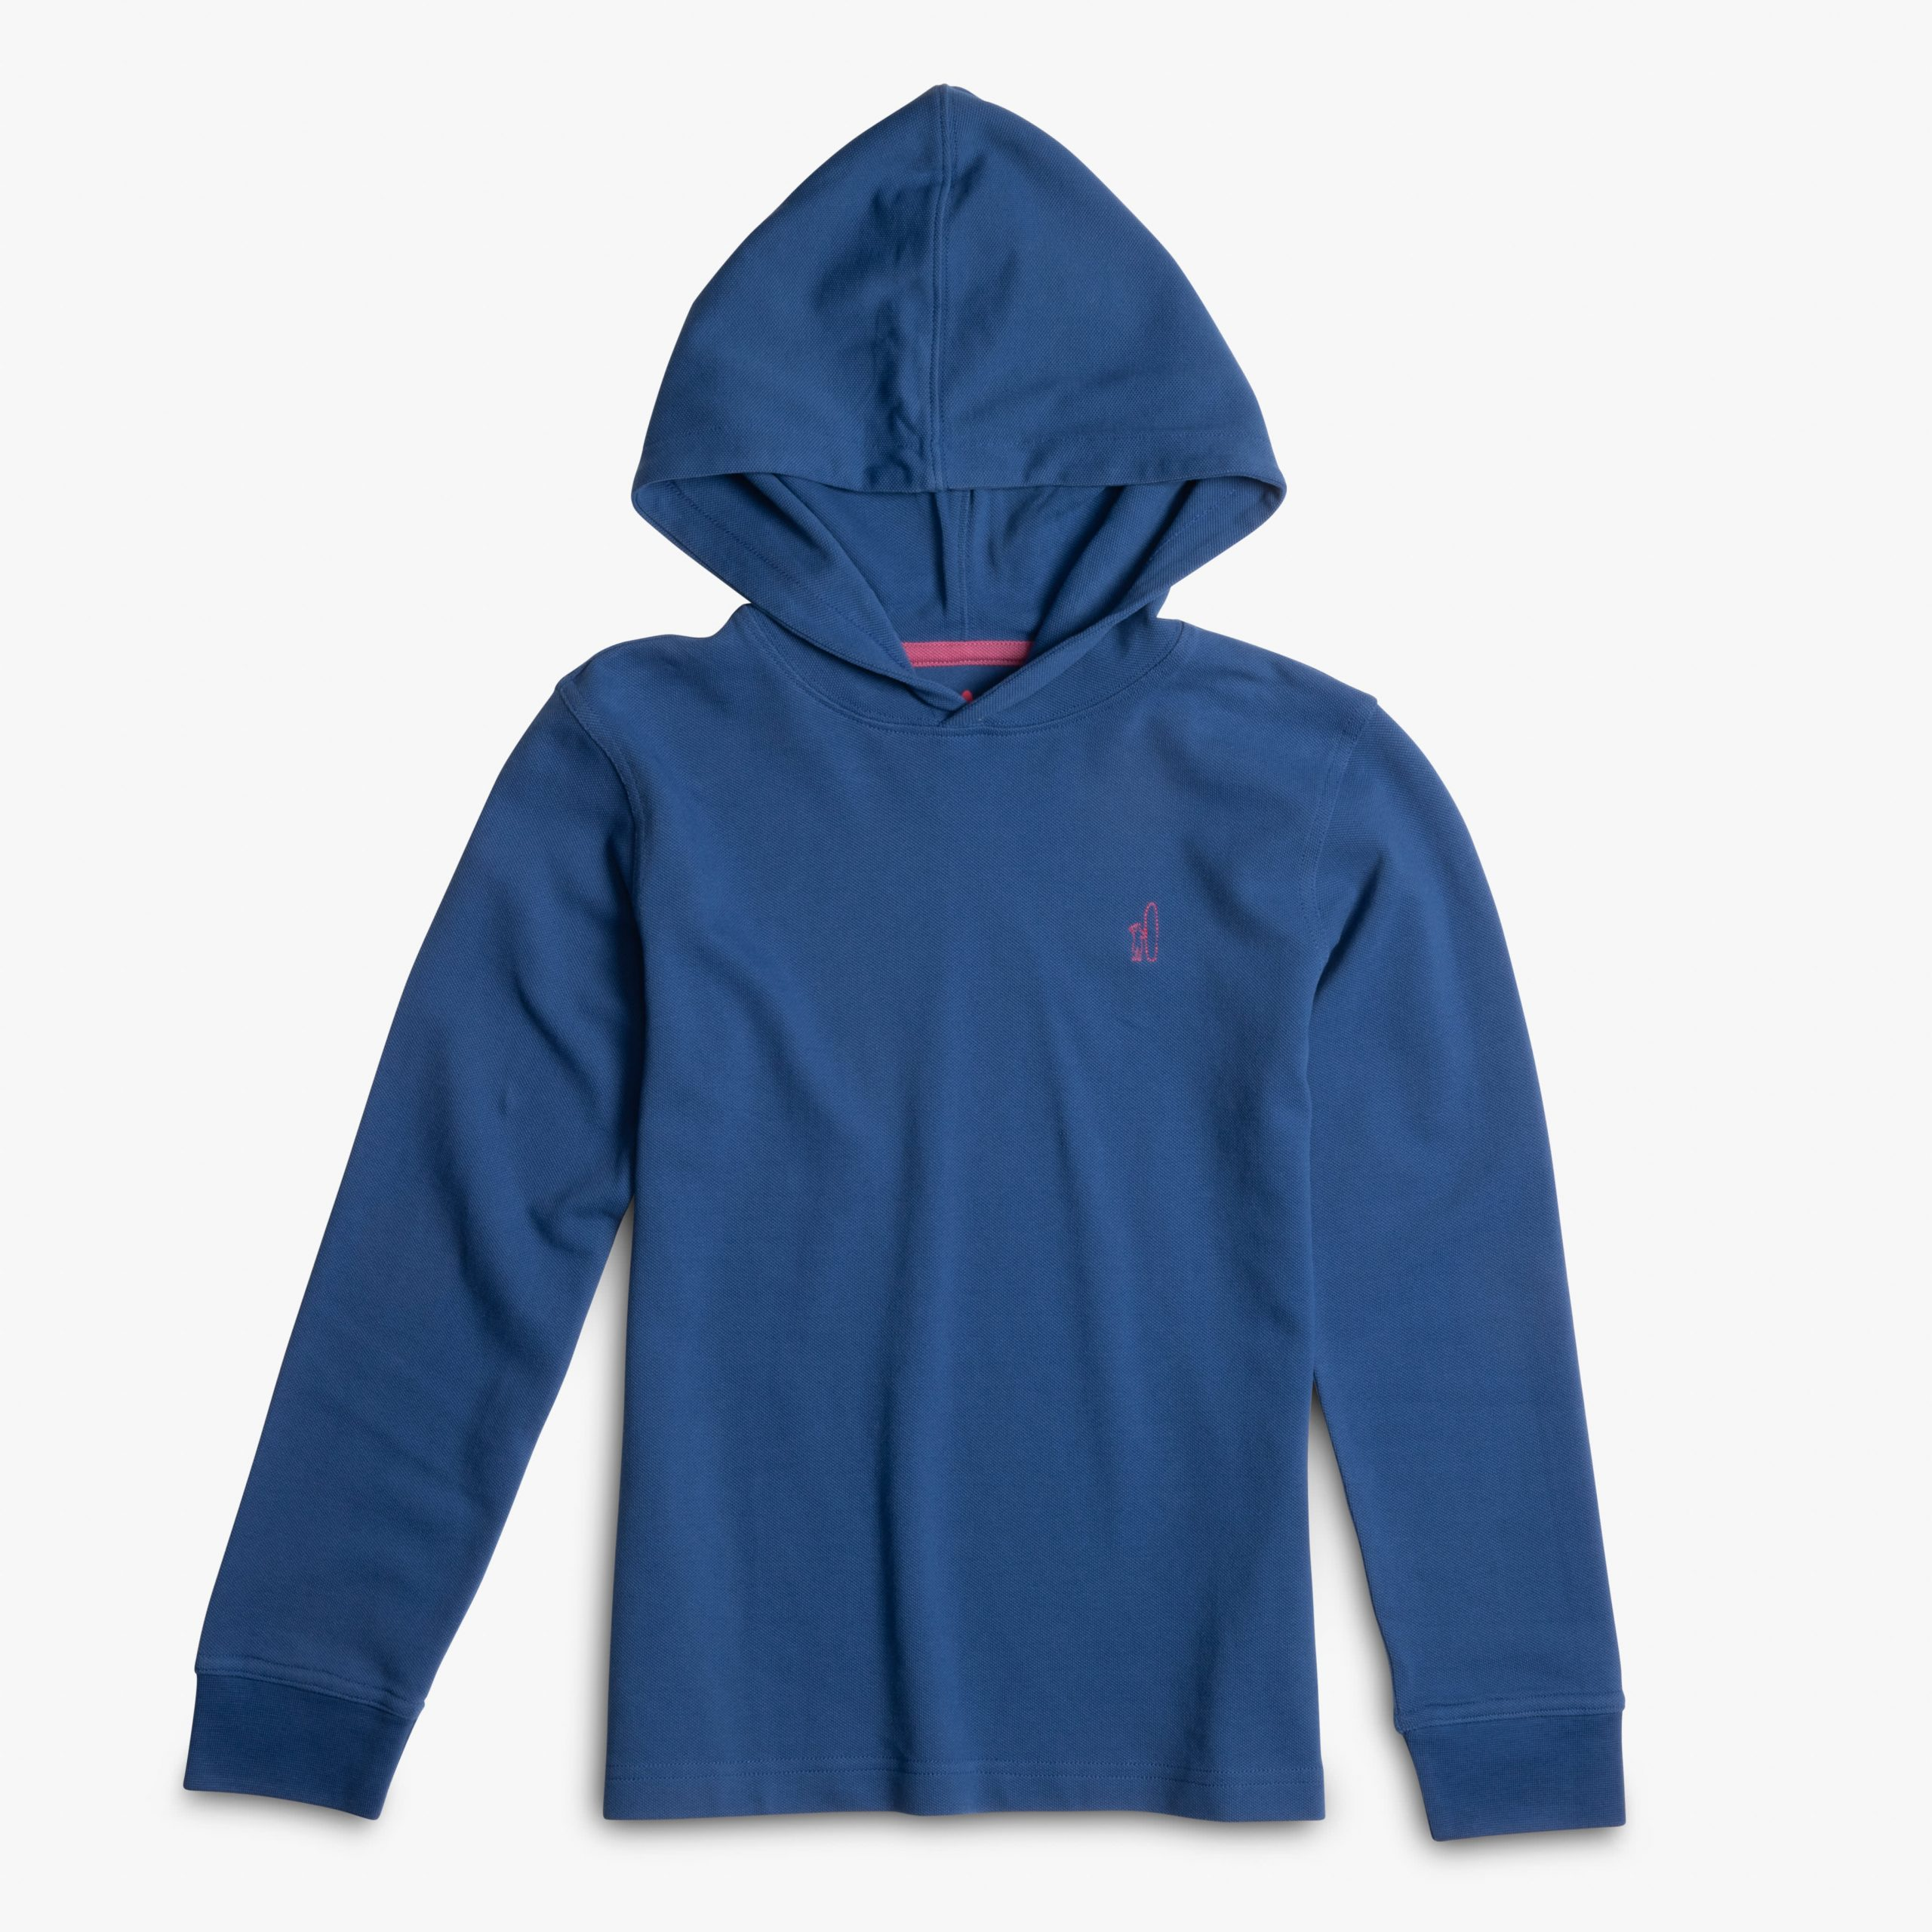 BARREL JR LS HOODED T-SHIRT